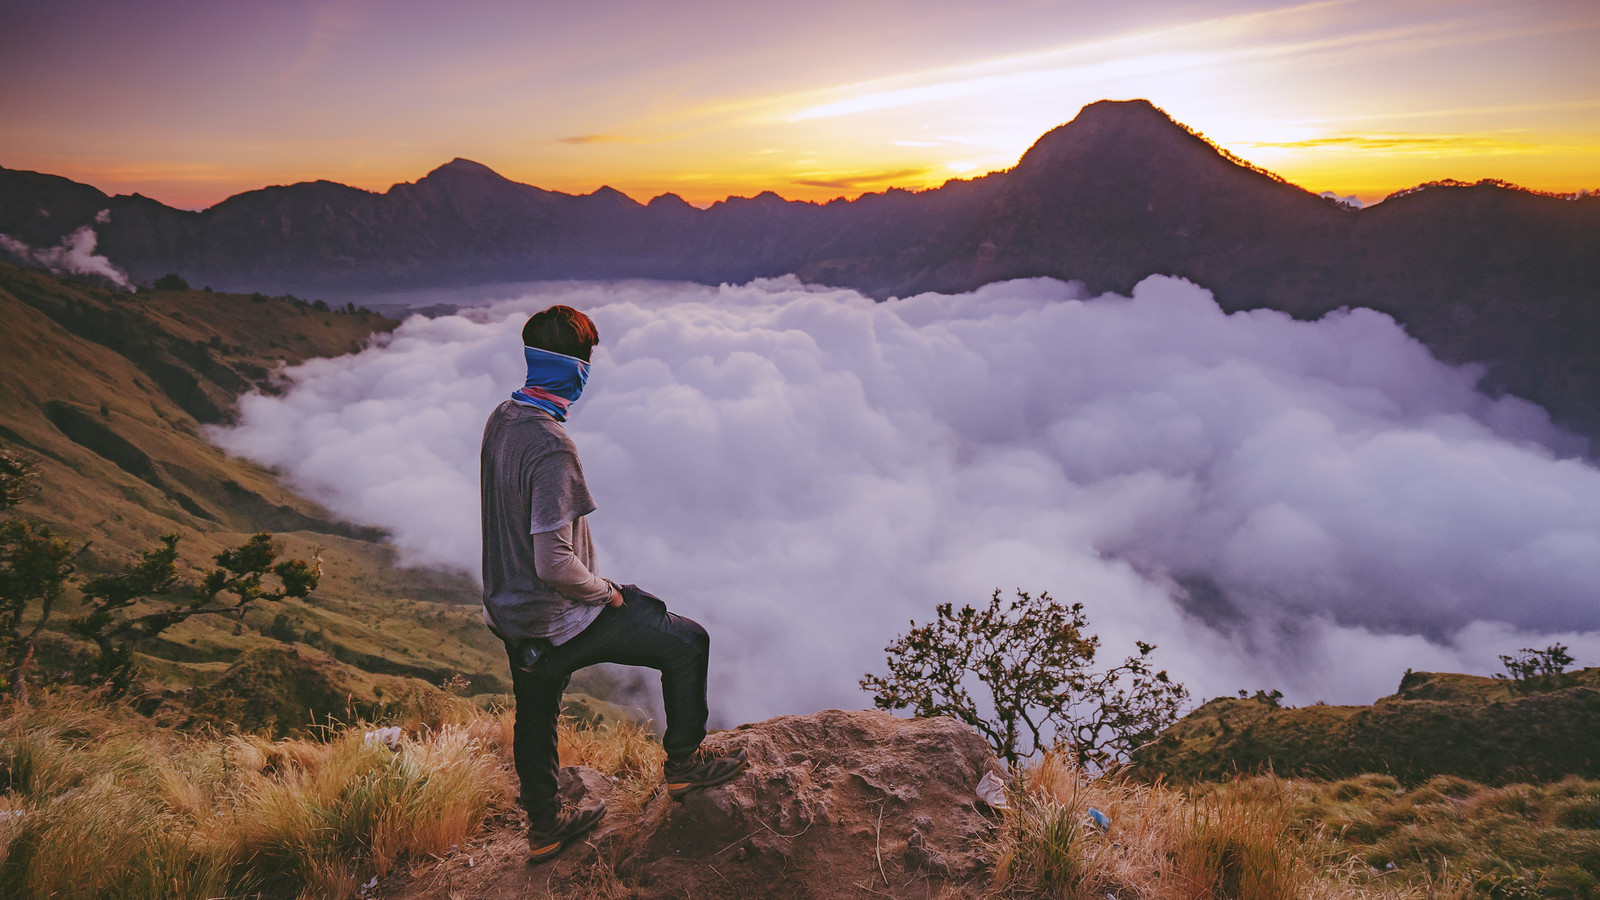 Latest news on Mount Rinjani 2019